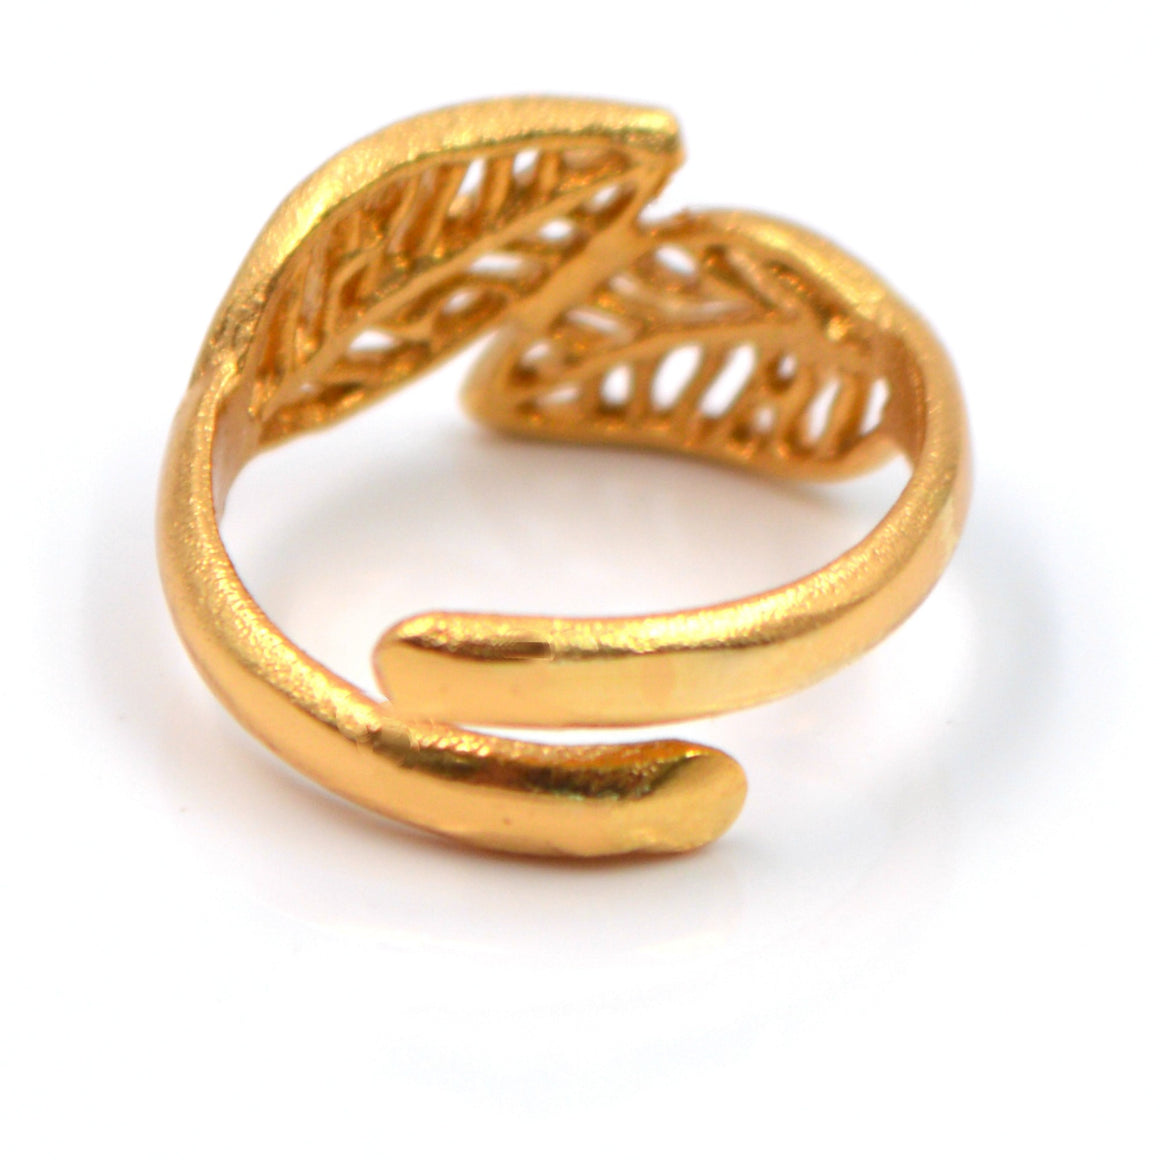 Birch Leaf Ring- 24K Gold Vermeil